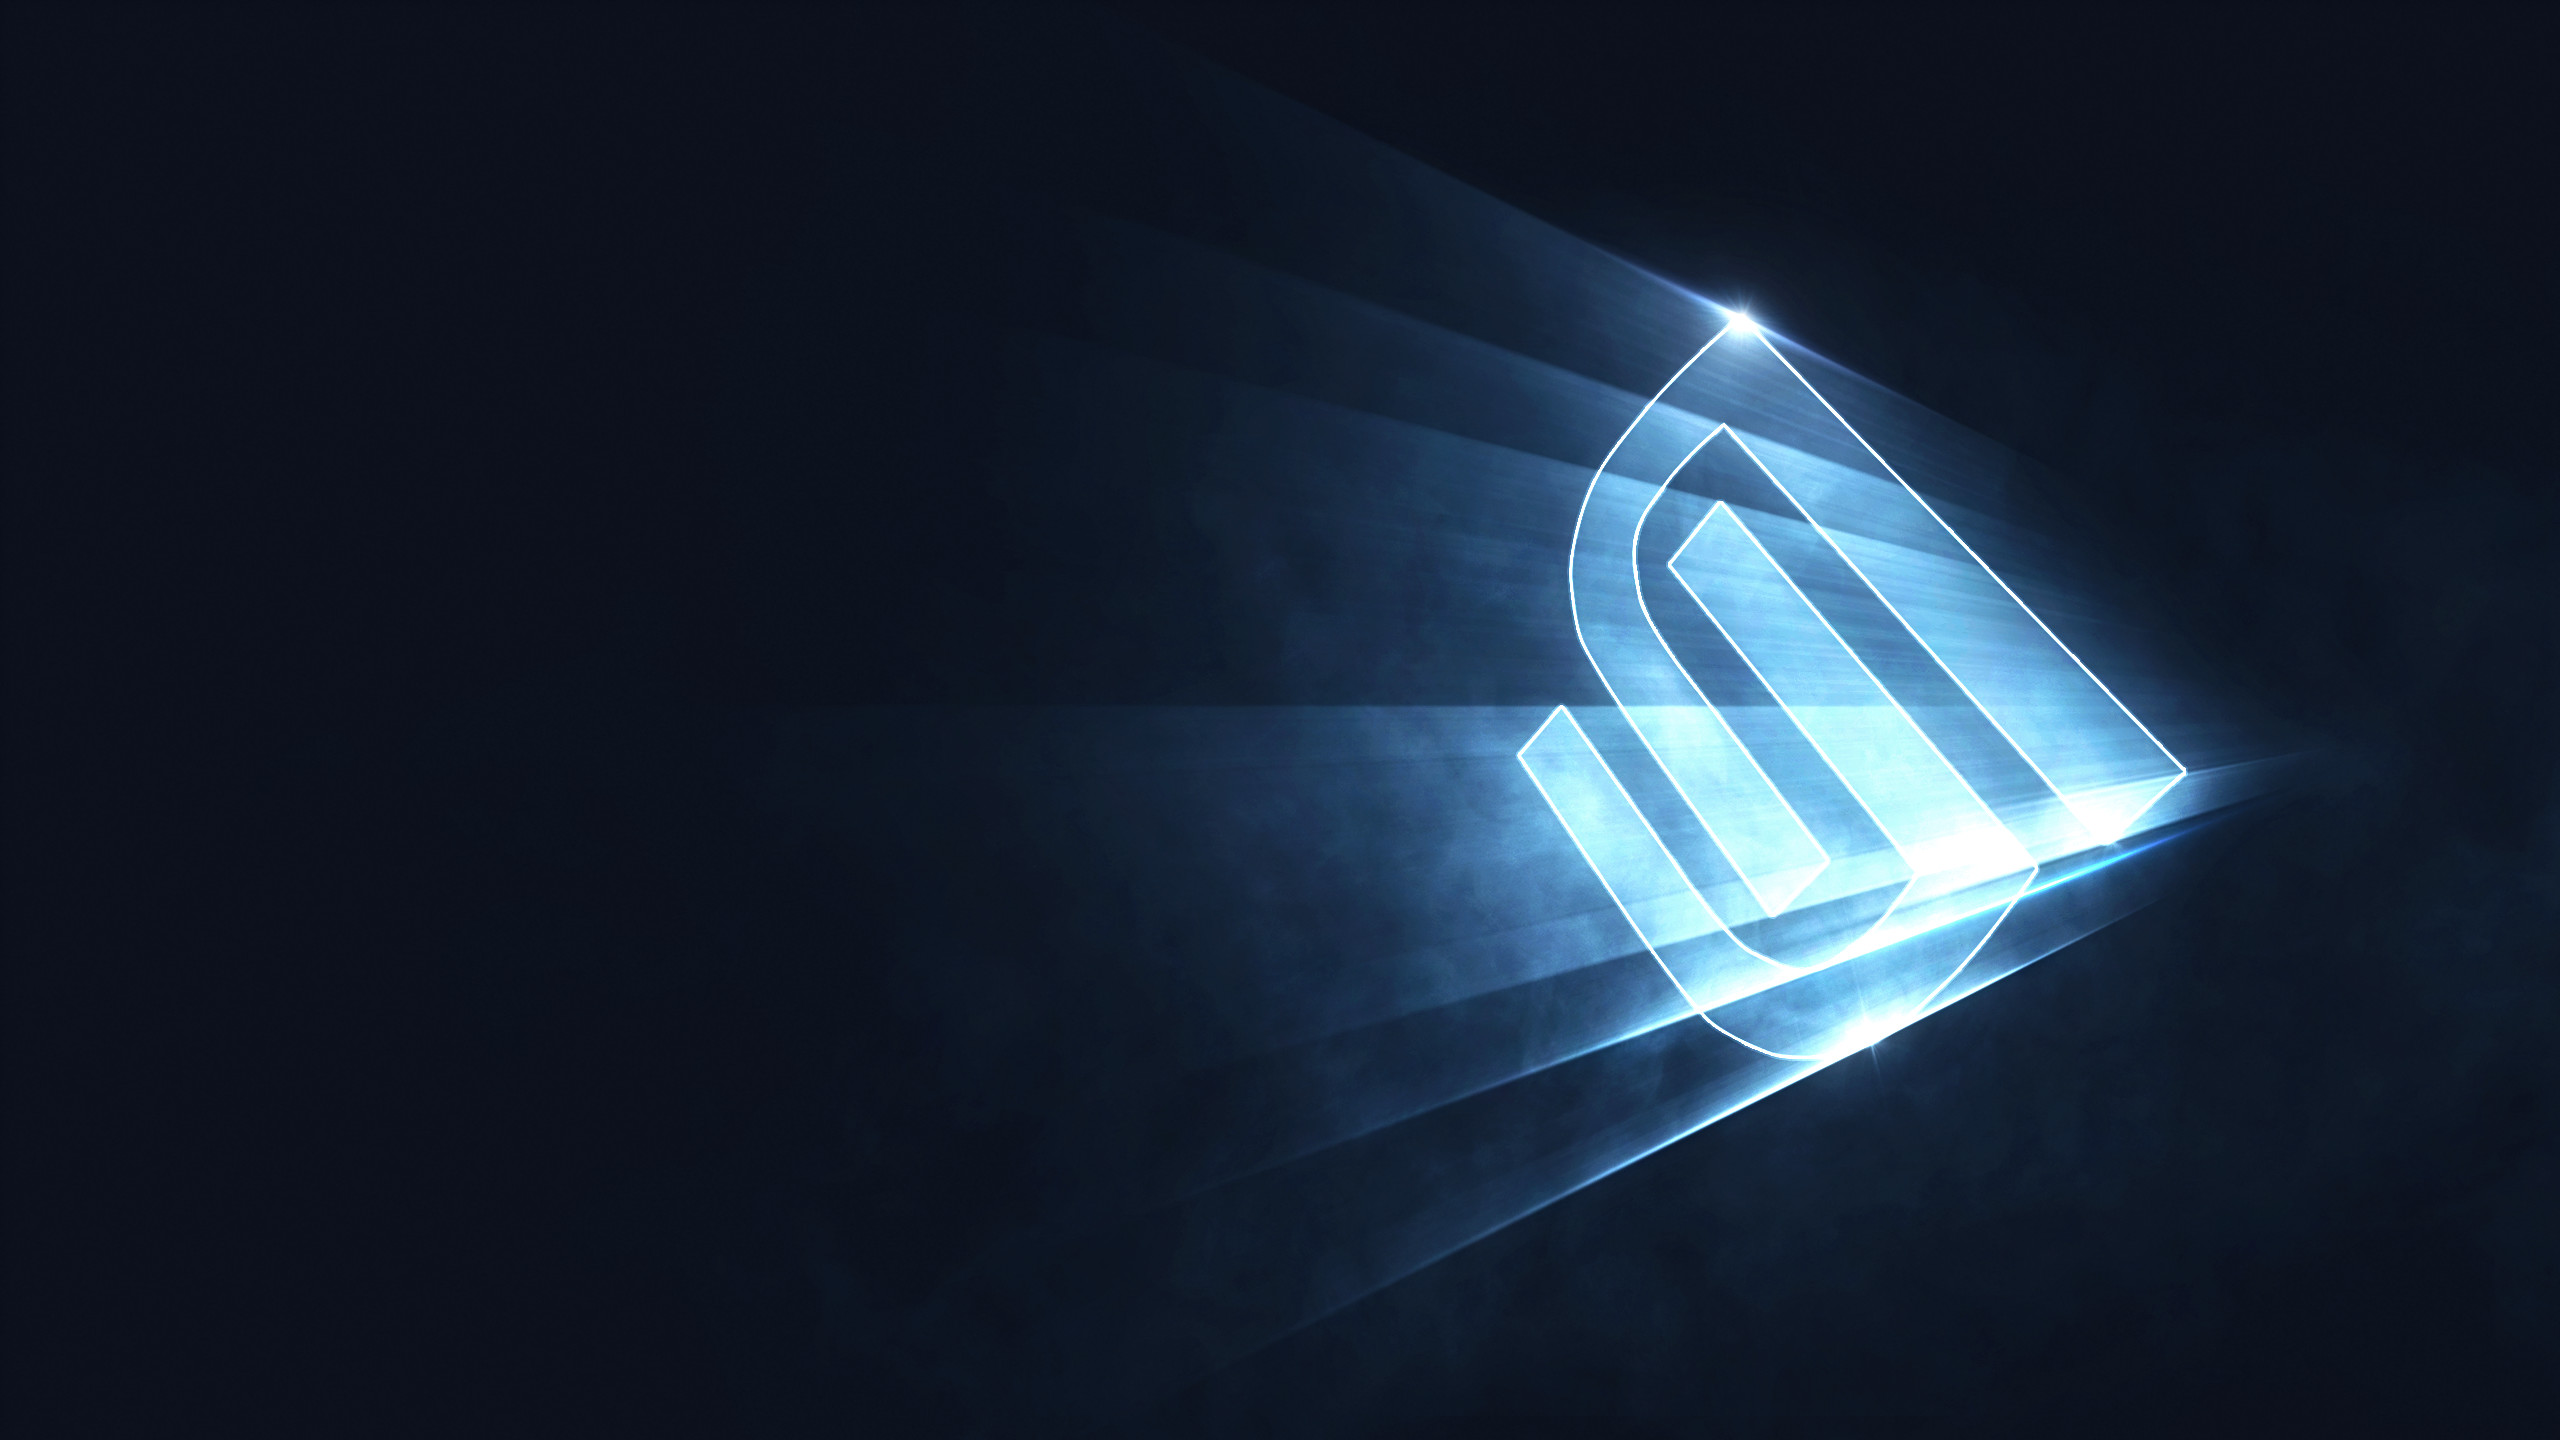 2560x1440 new_gnome_1510_hero-logo_wallpaper. ...